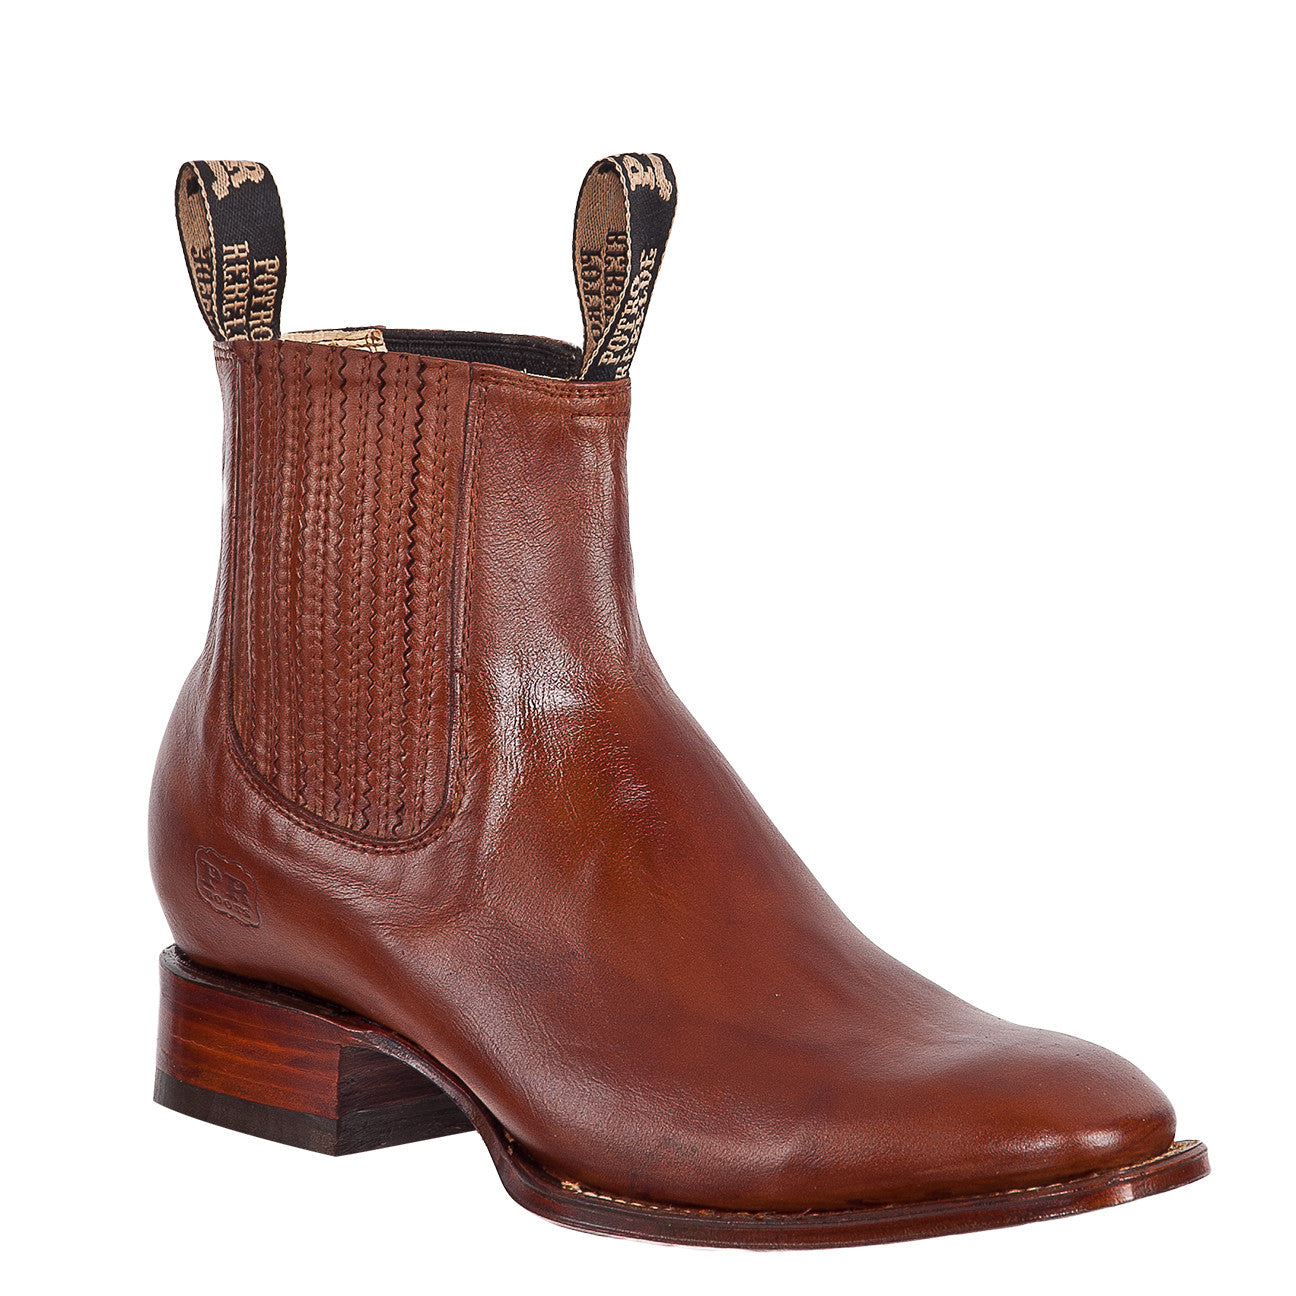 Potro Rebelde Square Toe Boots